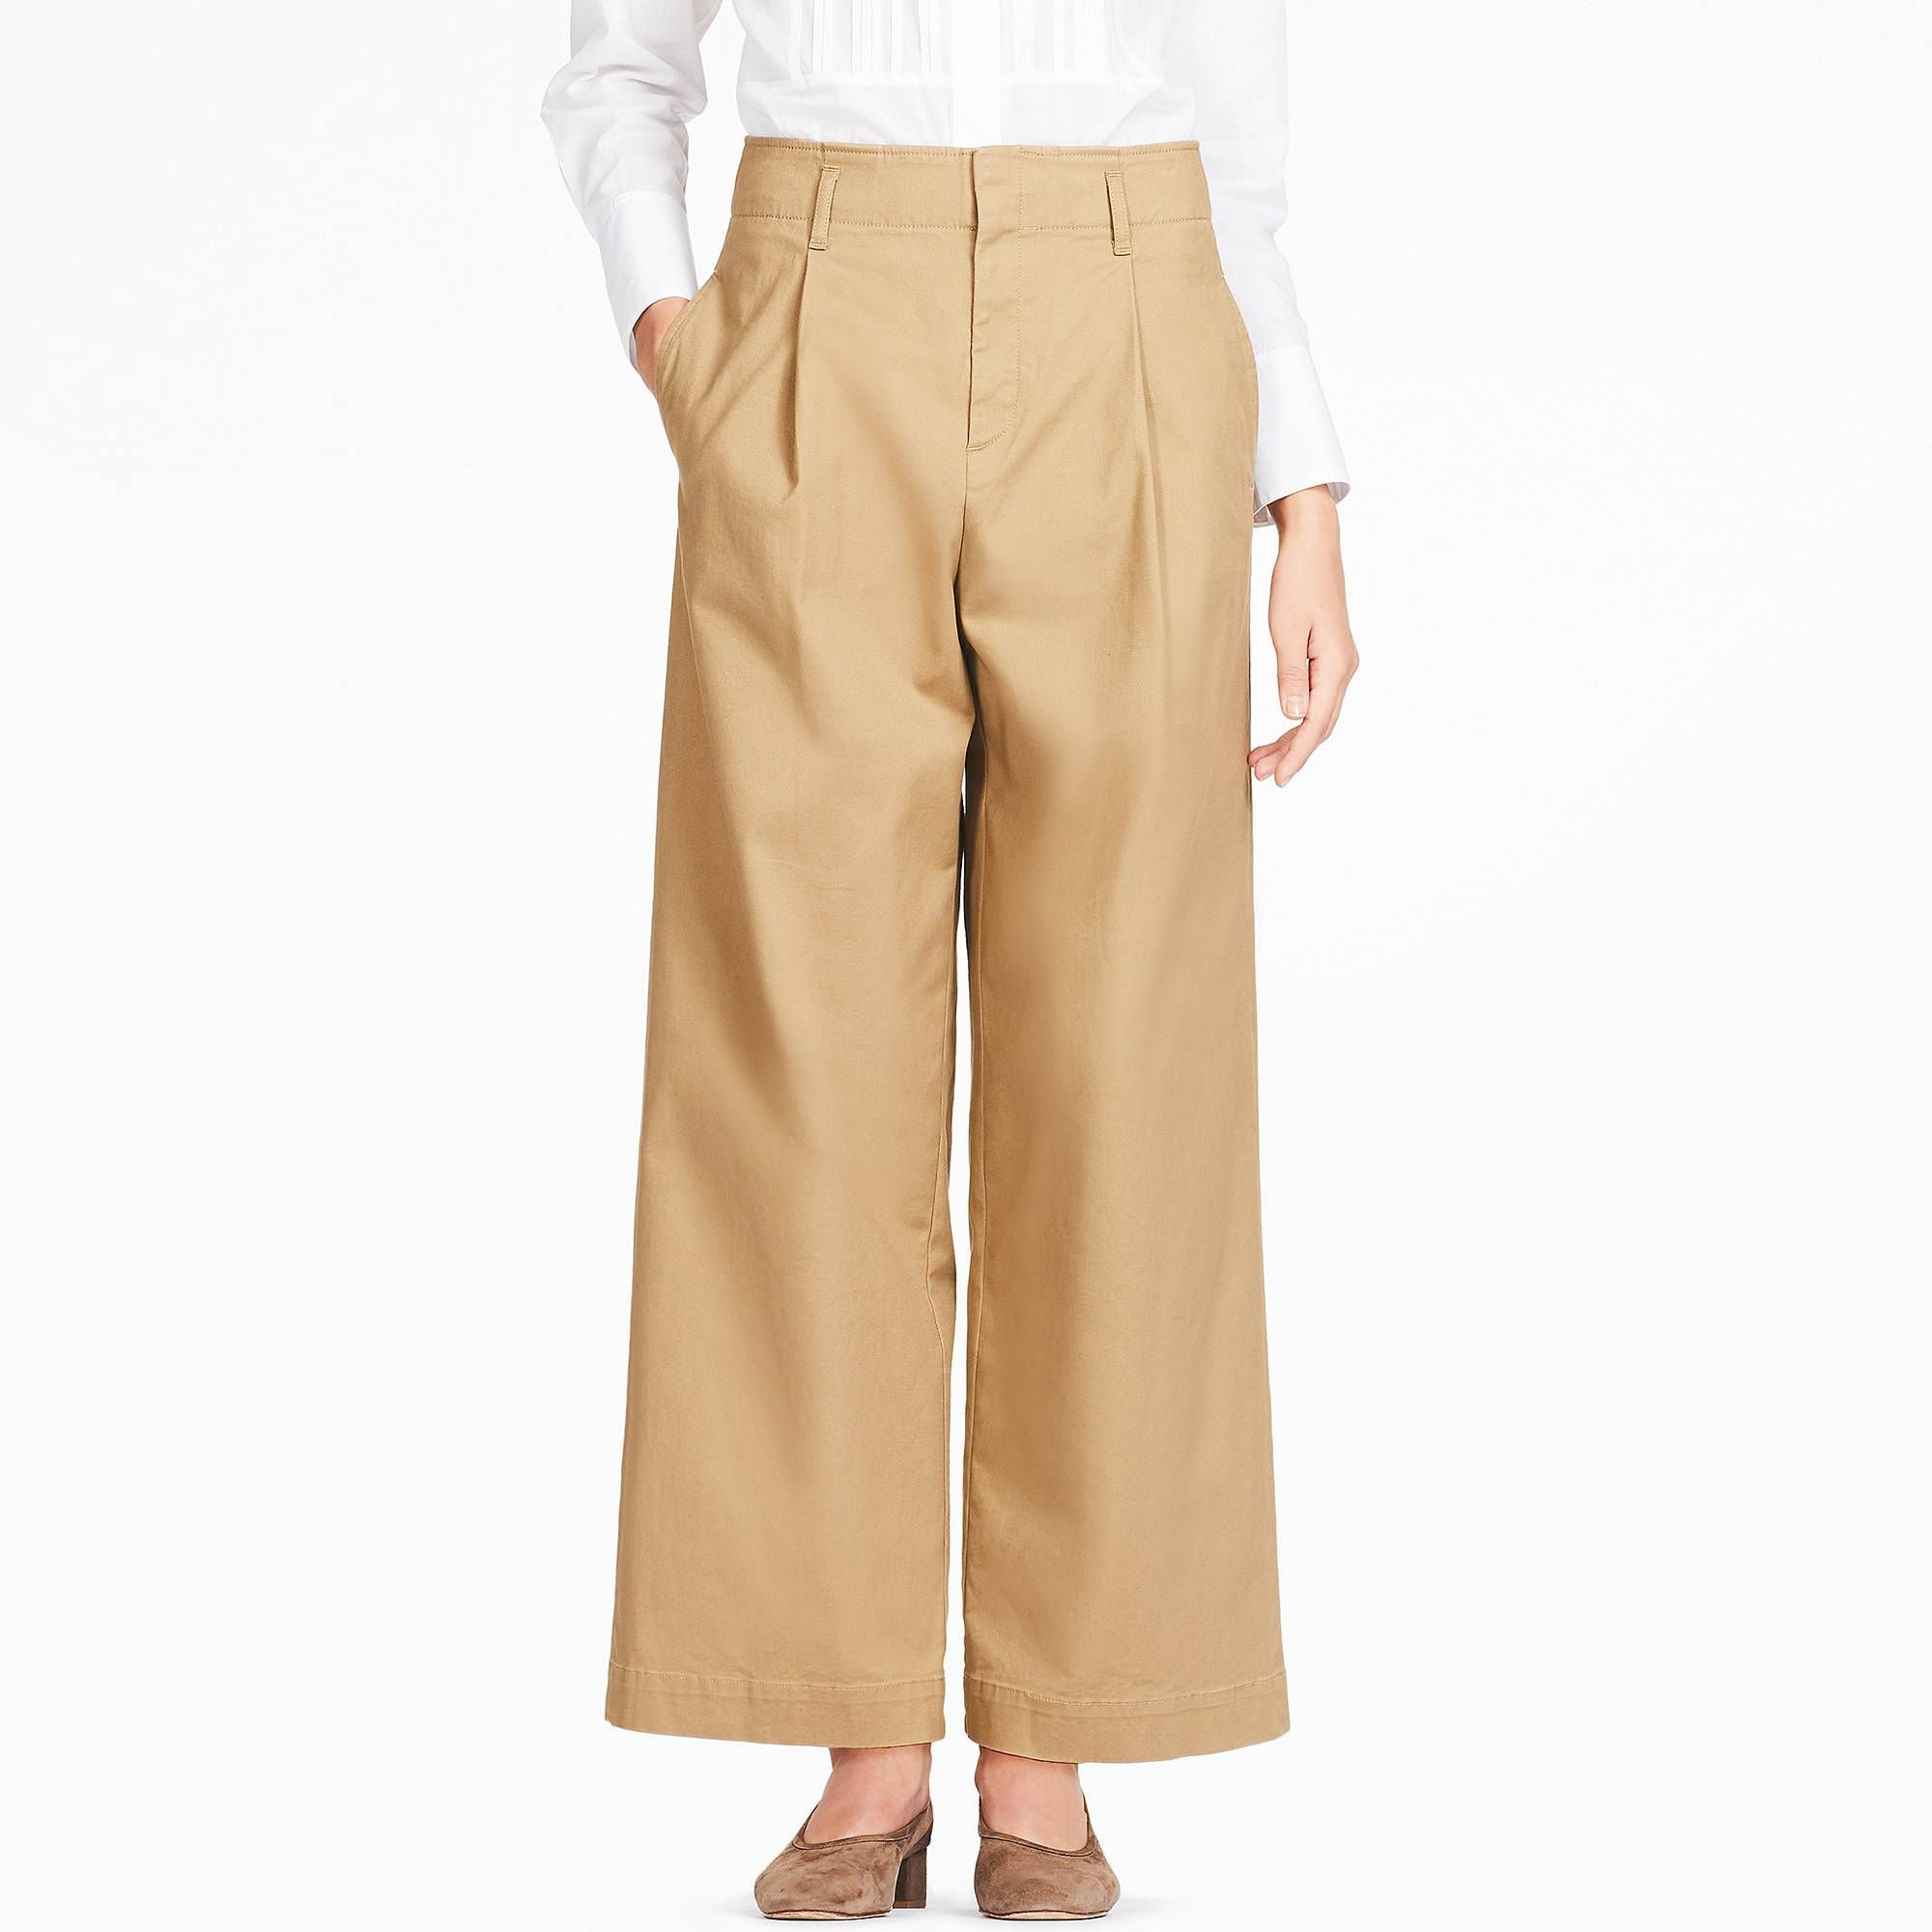 db63ced4a Women high-waist chino wide leg pants | style + ease = steeze ...